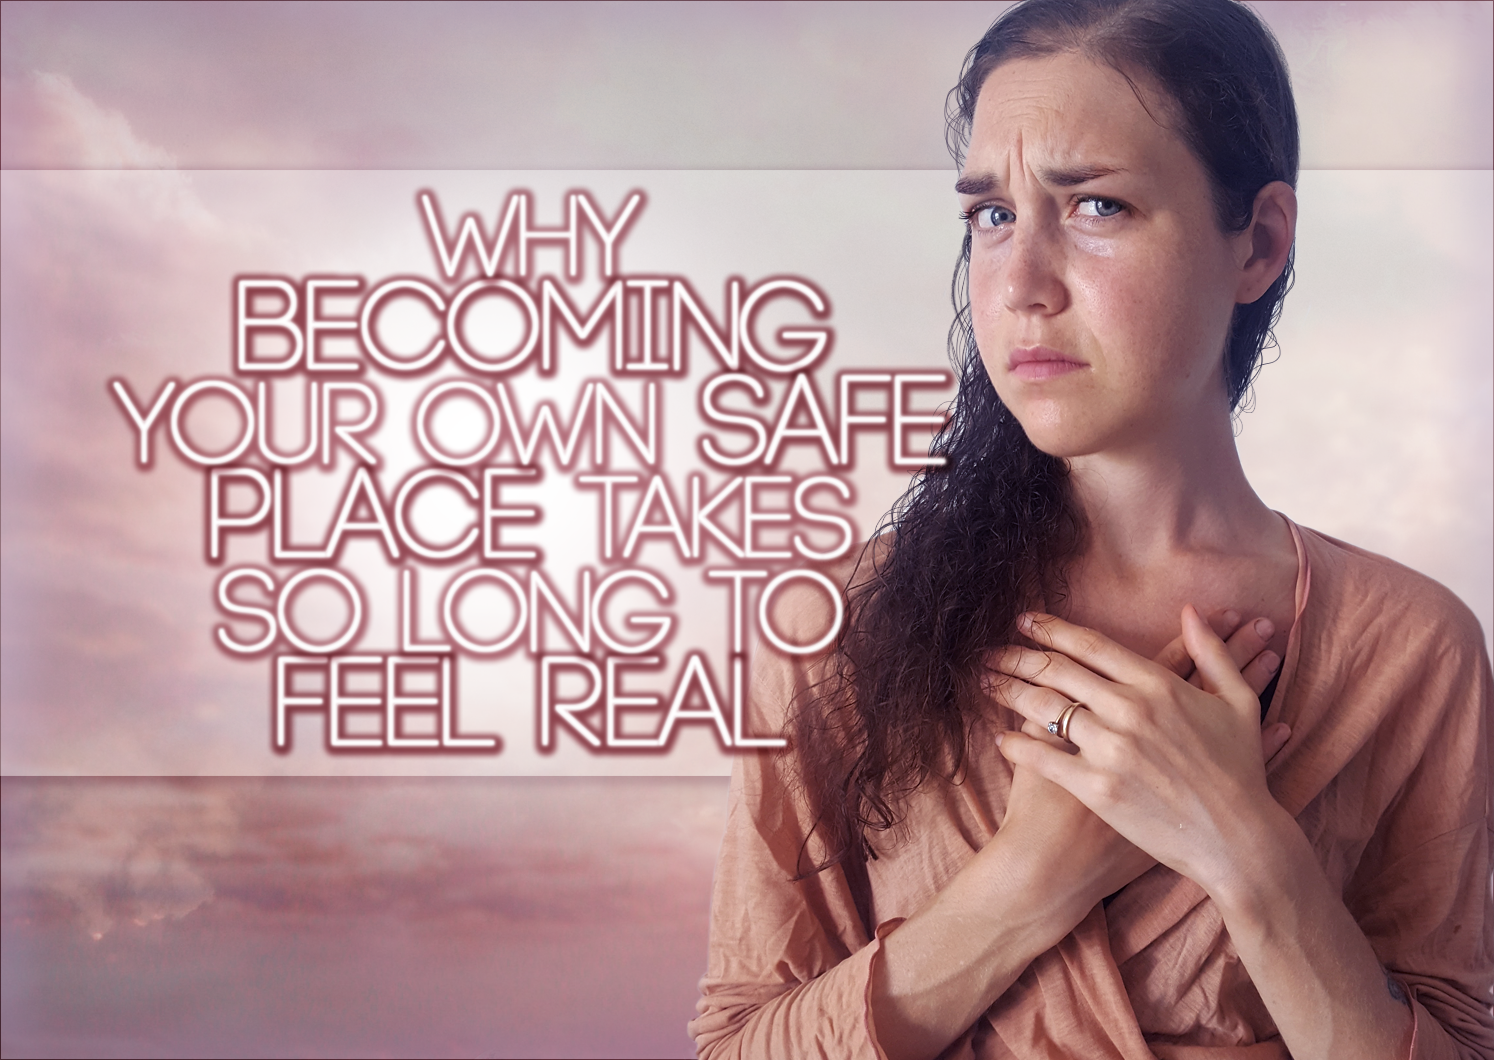 Why Becoming Your Own Safe Place Takes SO Long To Feel REAL